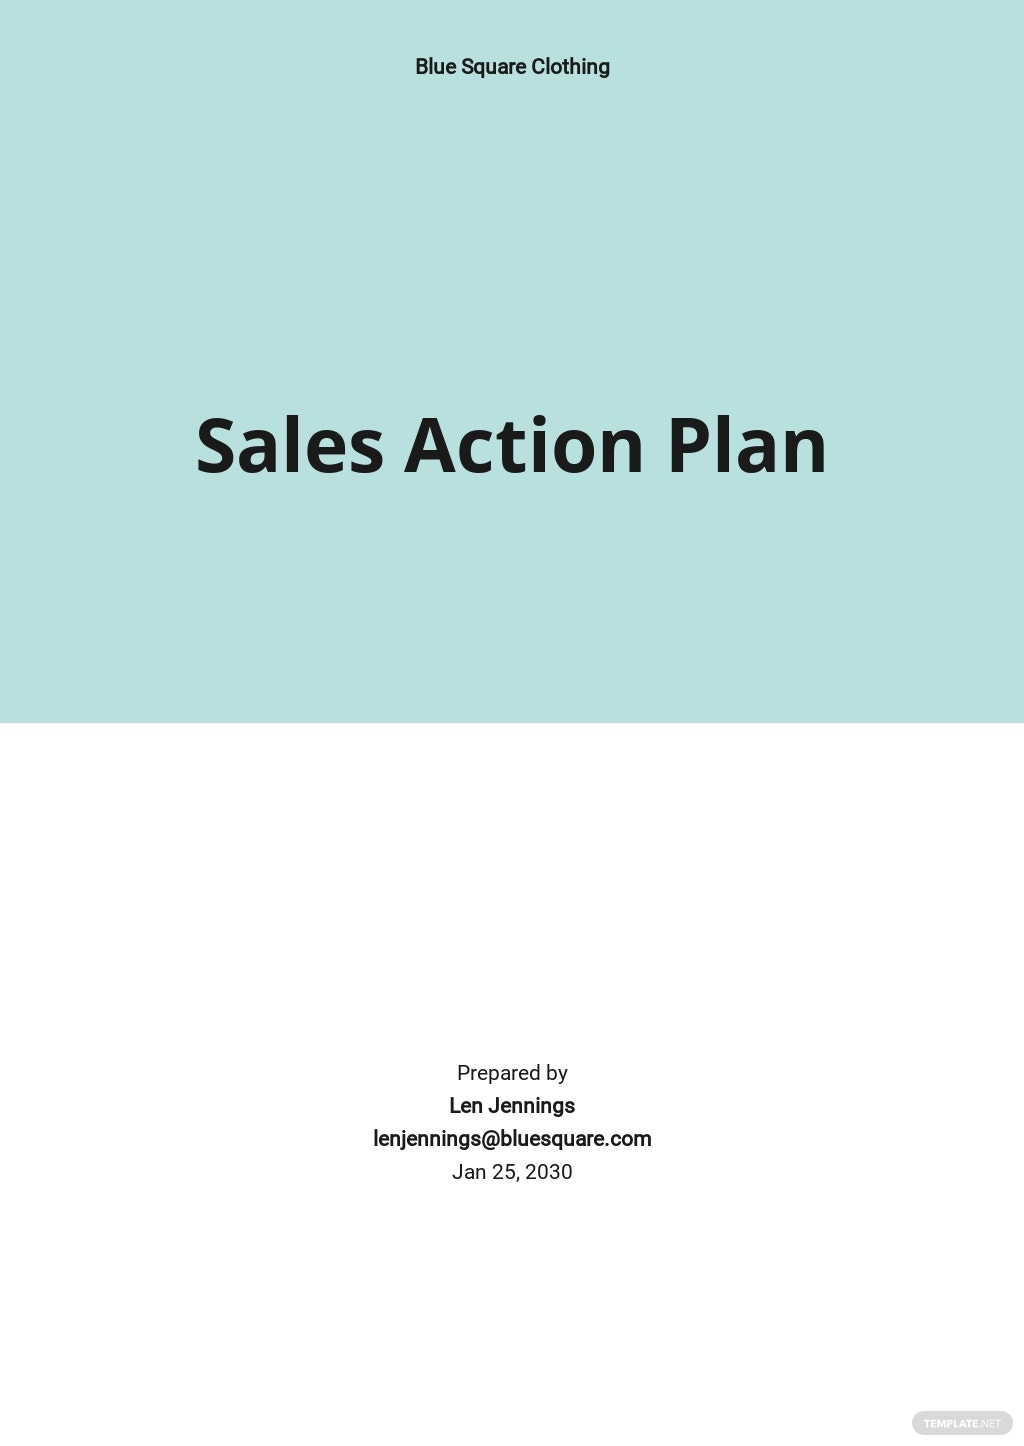 Business Sales Action Plan Template.jpe